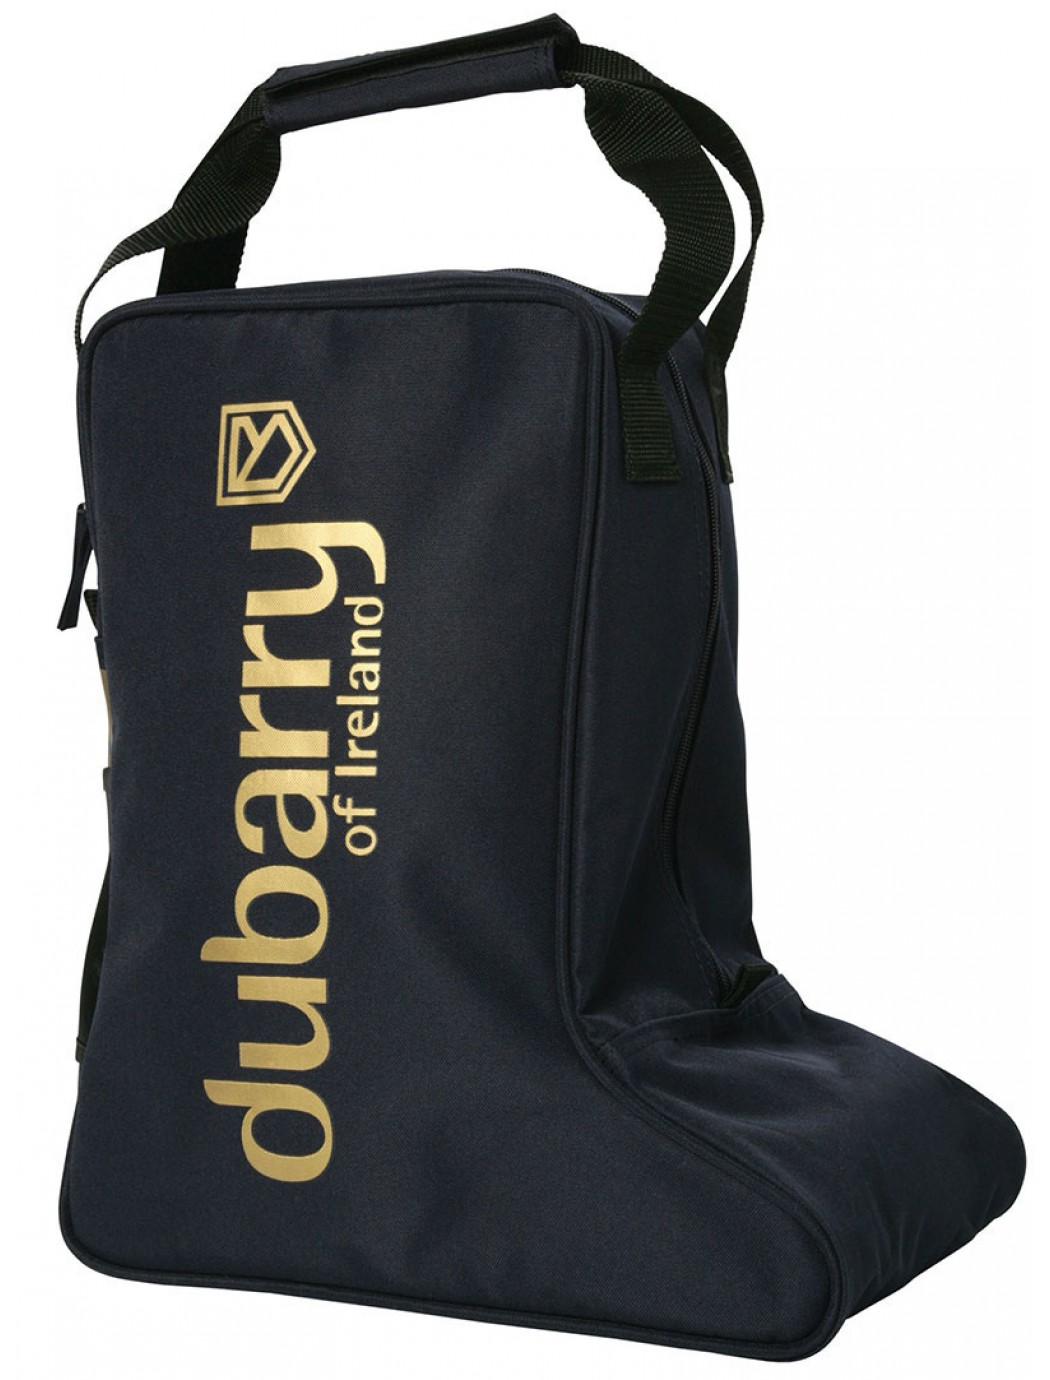 glenlo-footwear-accessories-navy 2